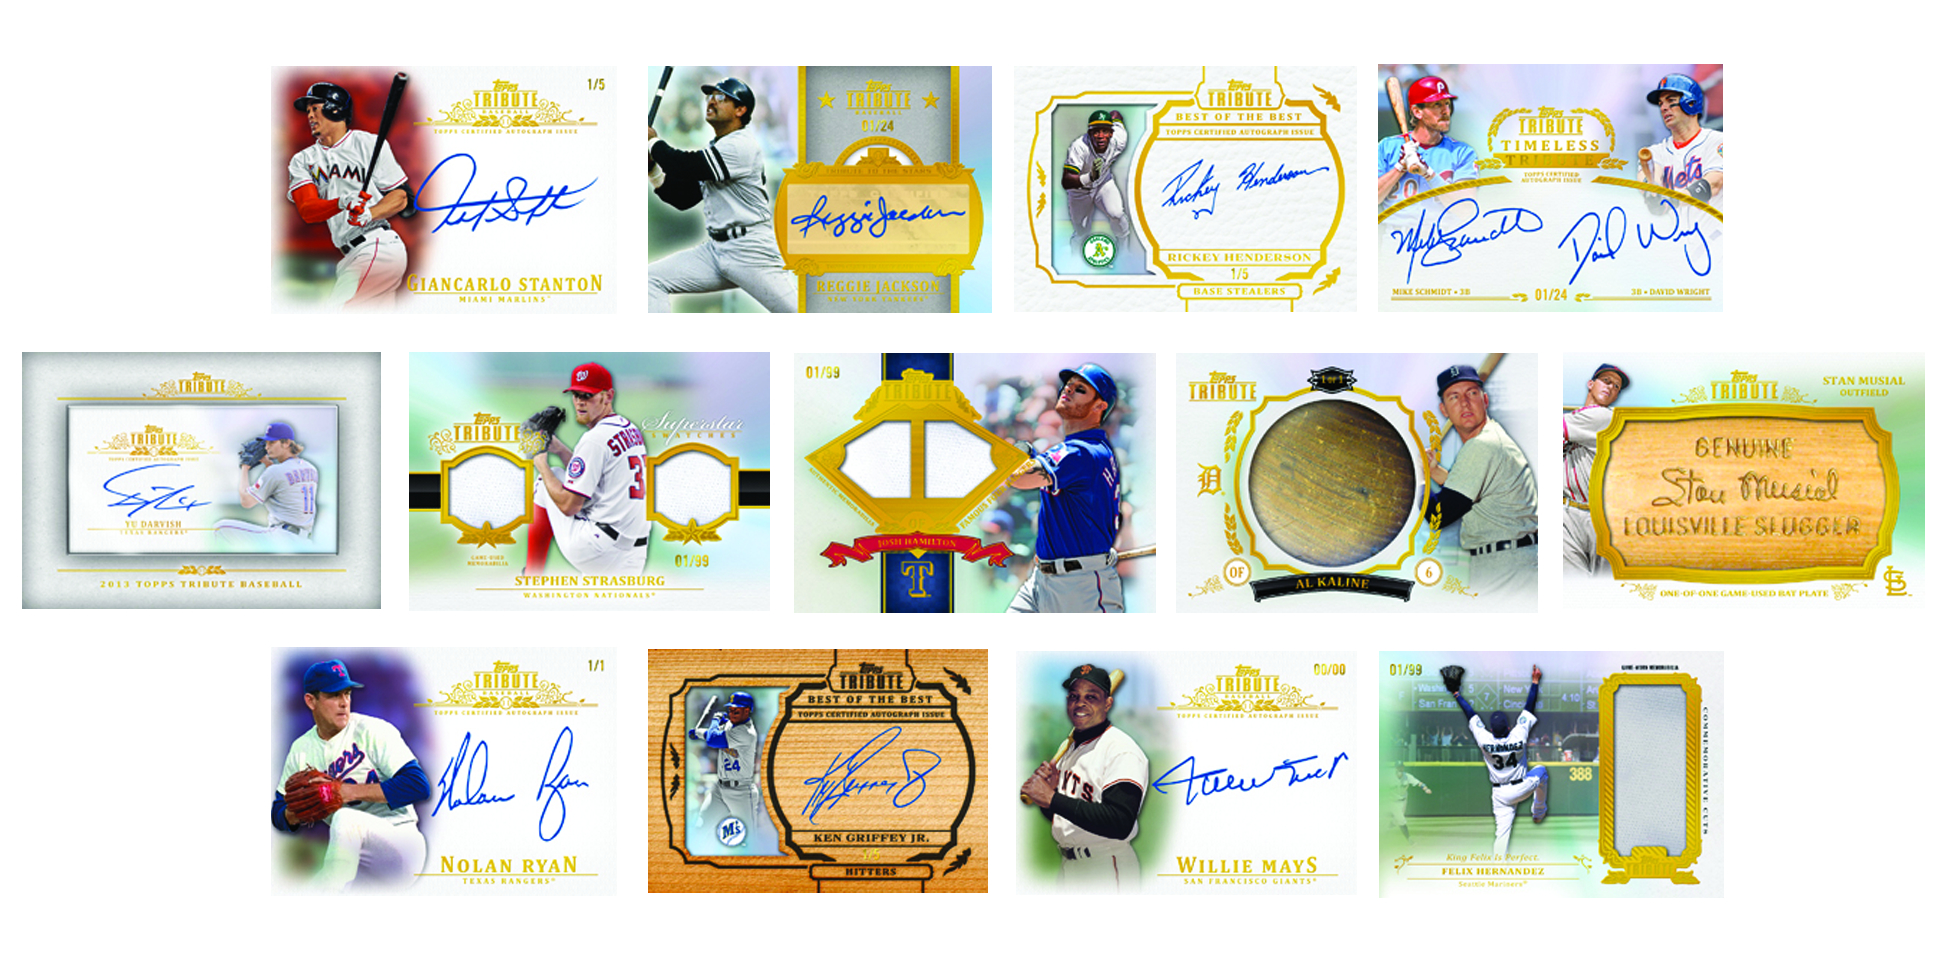 TOPPS 2013 TRIBUTE BASEBALL T/C BOX